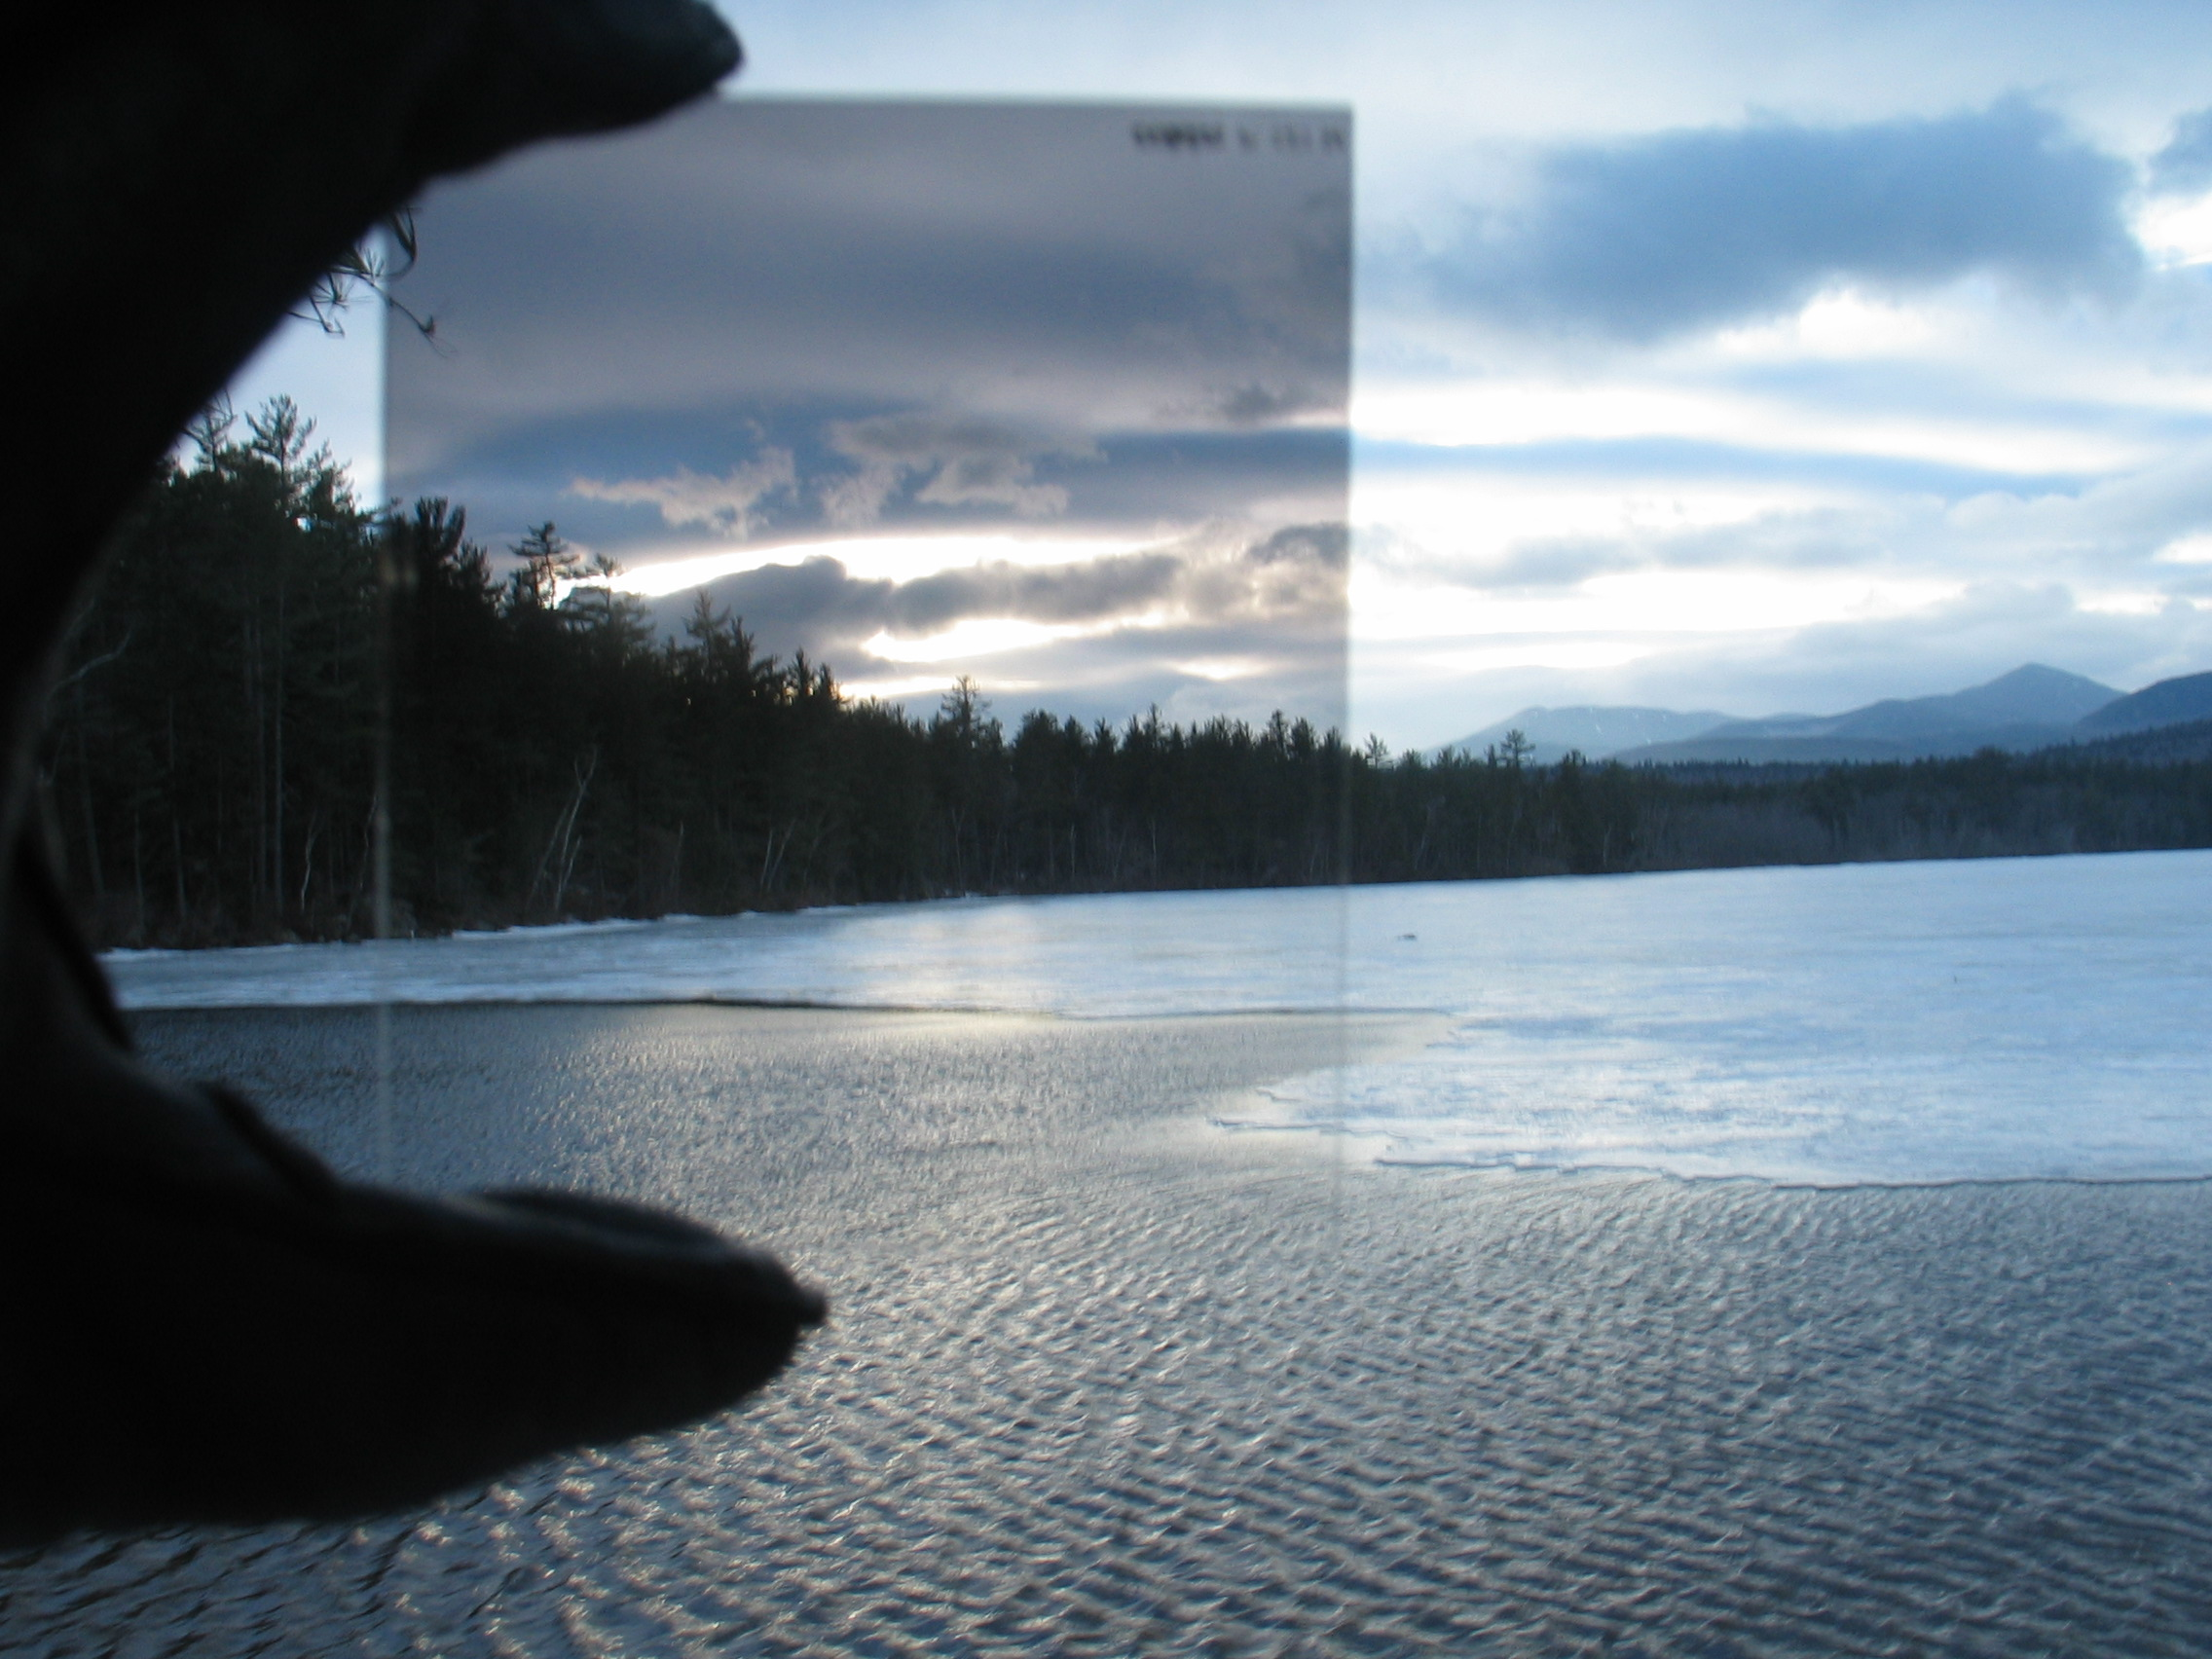 ND Filters for Nikon Canon